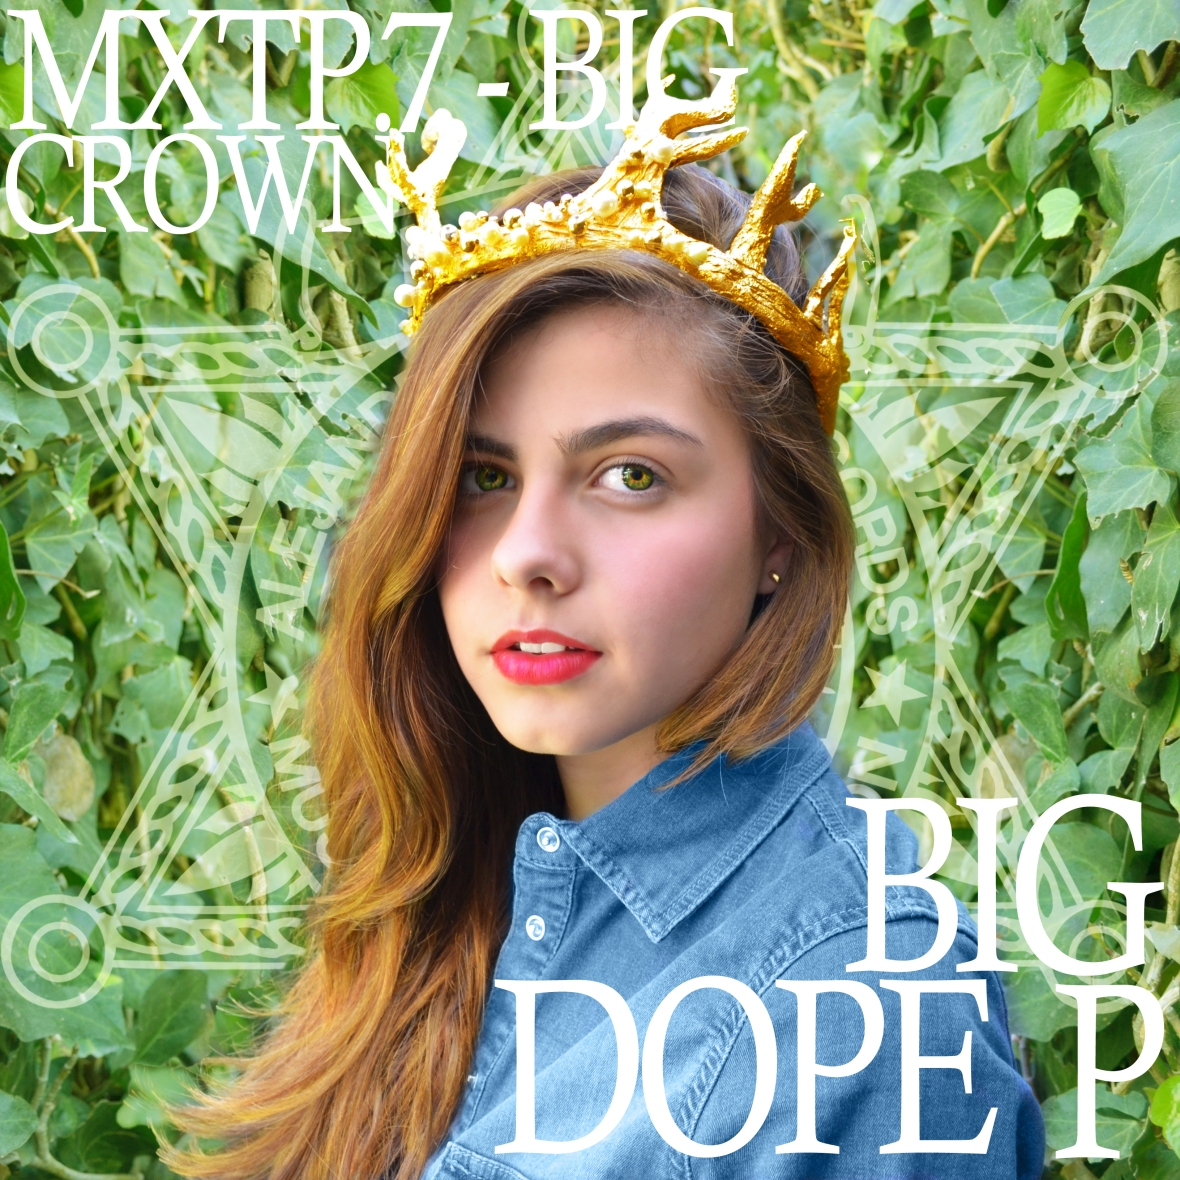 MXTP.7-BIG CROWN BY DIG DOPE P ALEJANDRO PINPON RECORDS.jpg